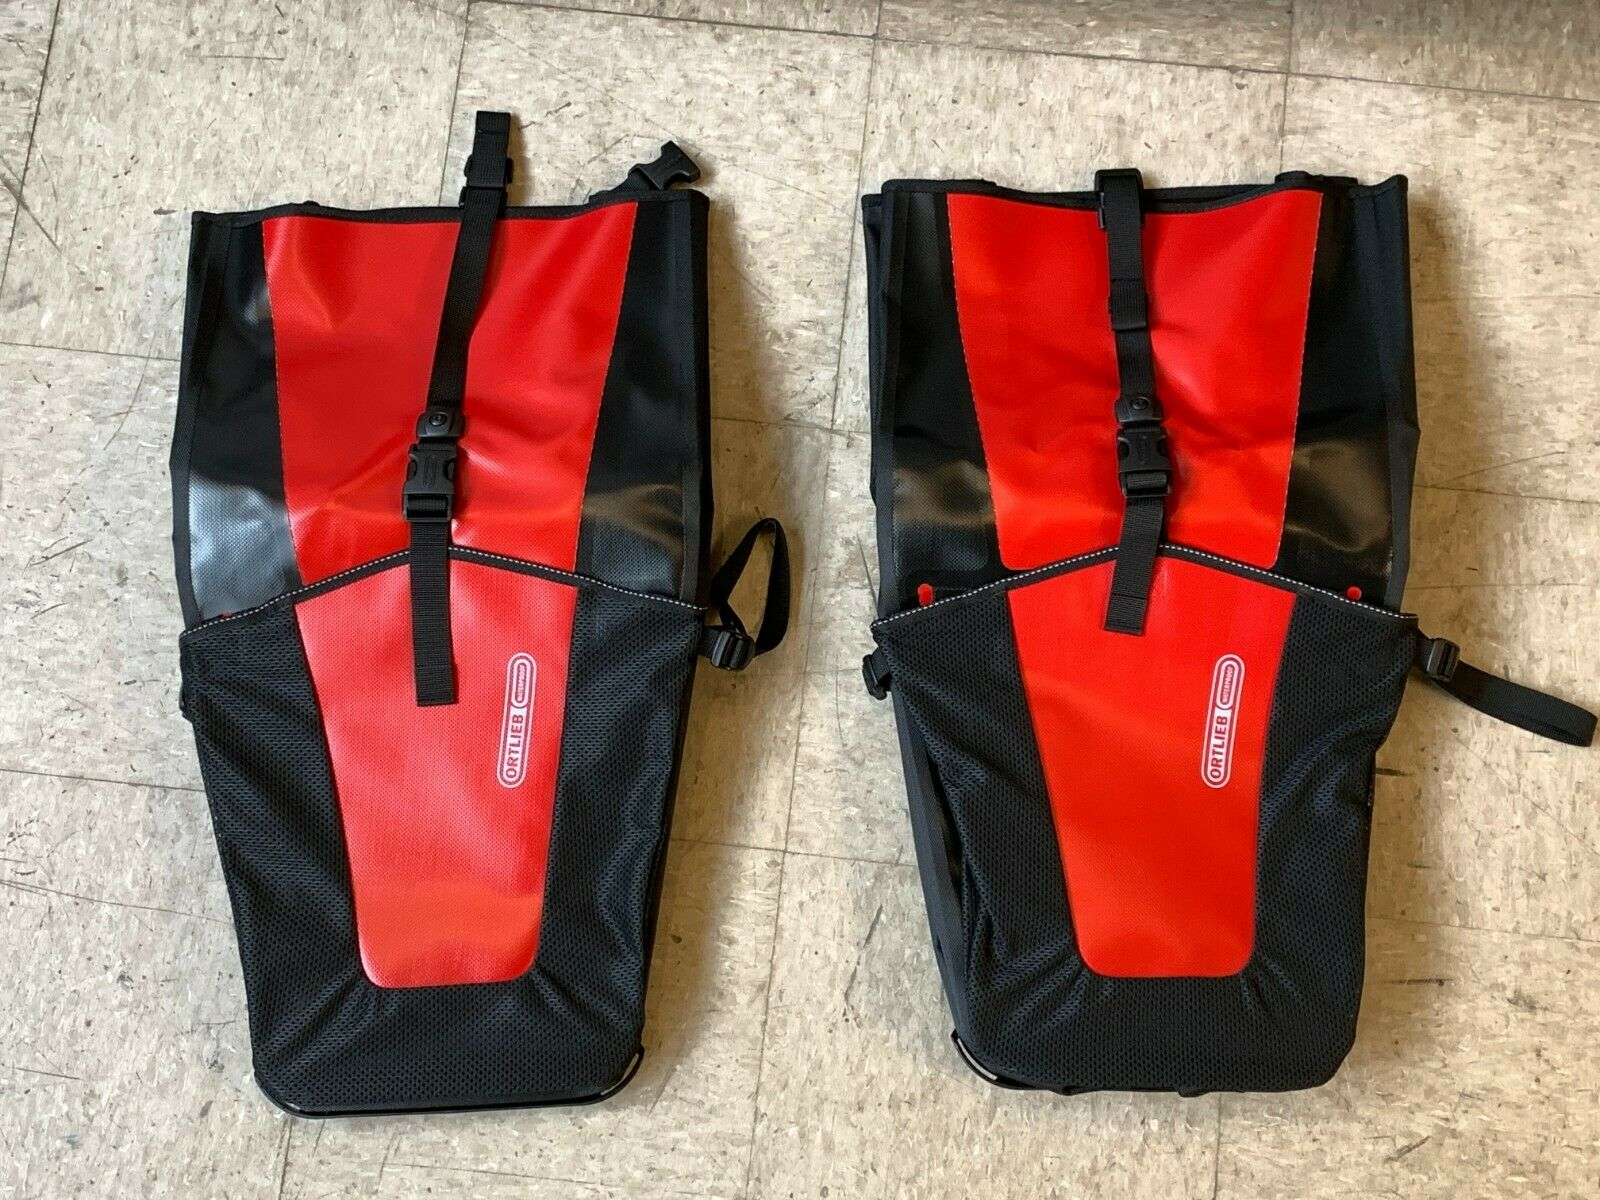 nuovo Ortlieb BackRoller Pro classeic Pair bicicletta Pannier rosso 78 L Waterproof